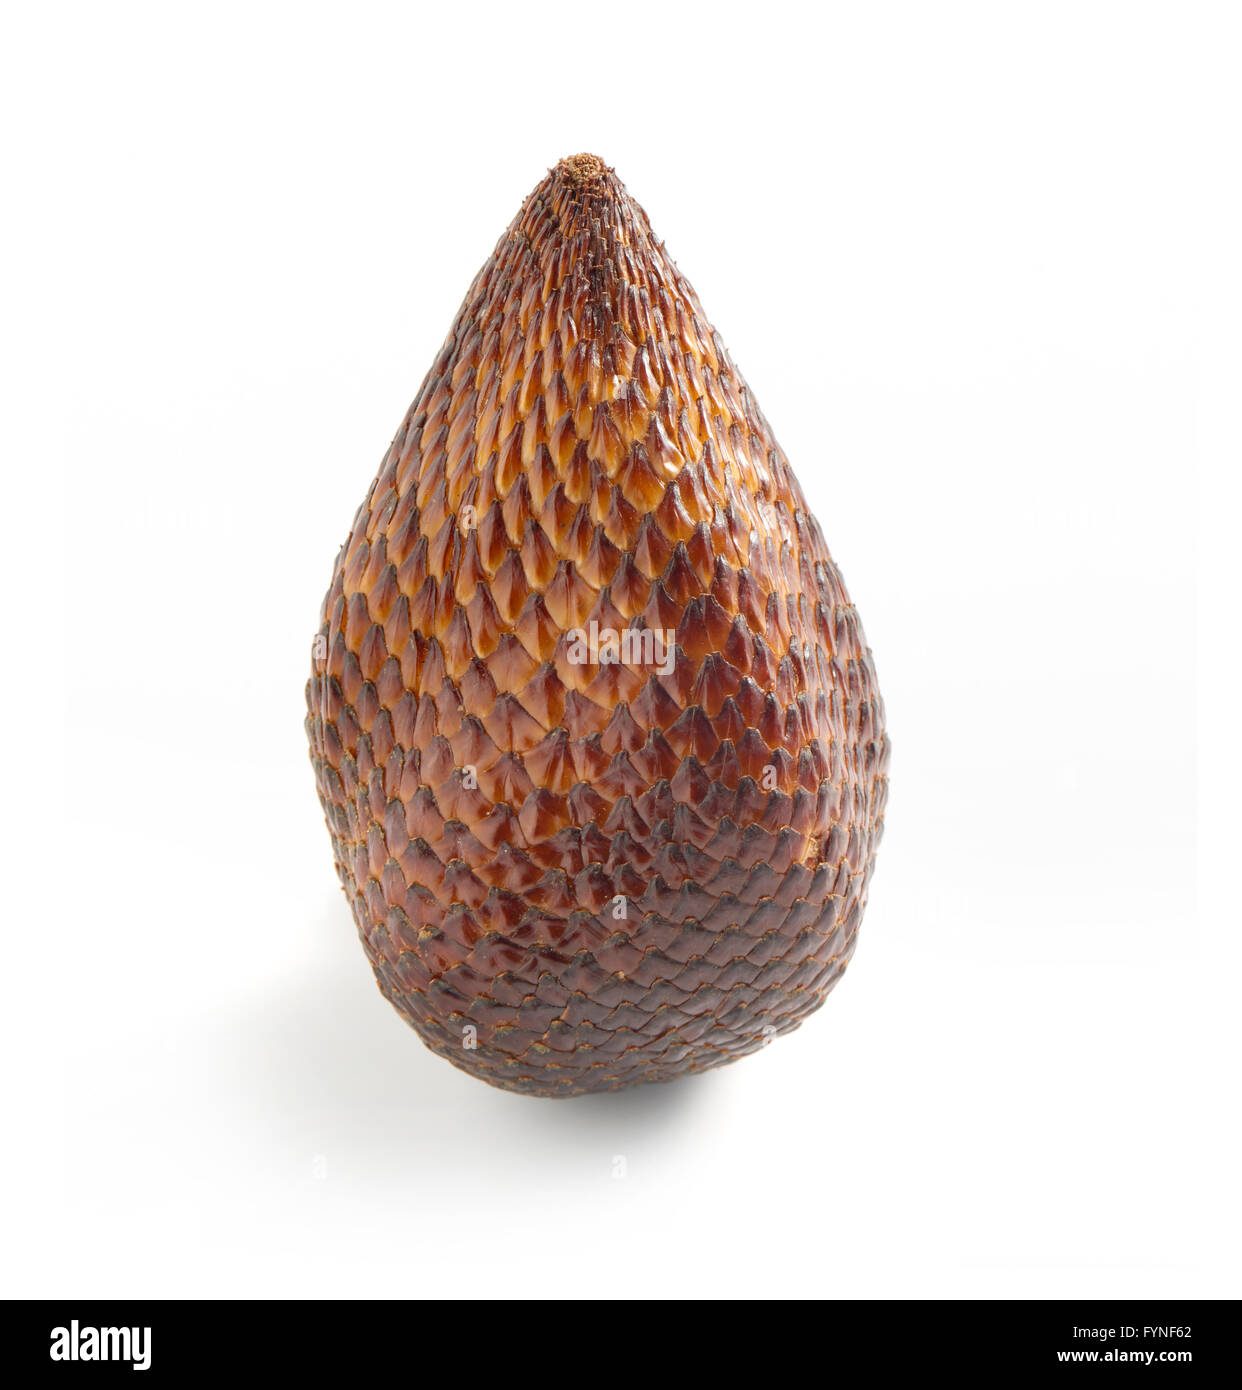 Close Up Still Life of Single Exotic Salak Palm Fruit with Brown Scaly Skin on White Background with Copy Space - Stock Image